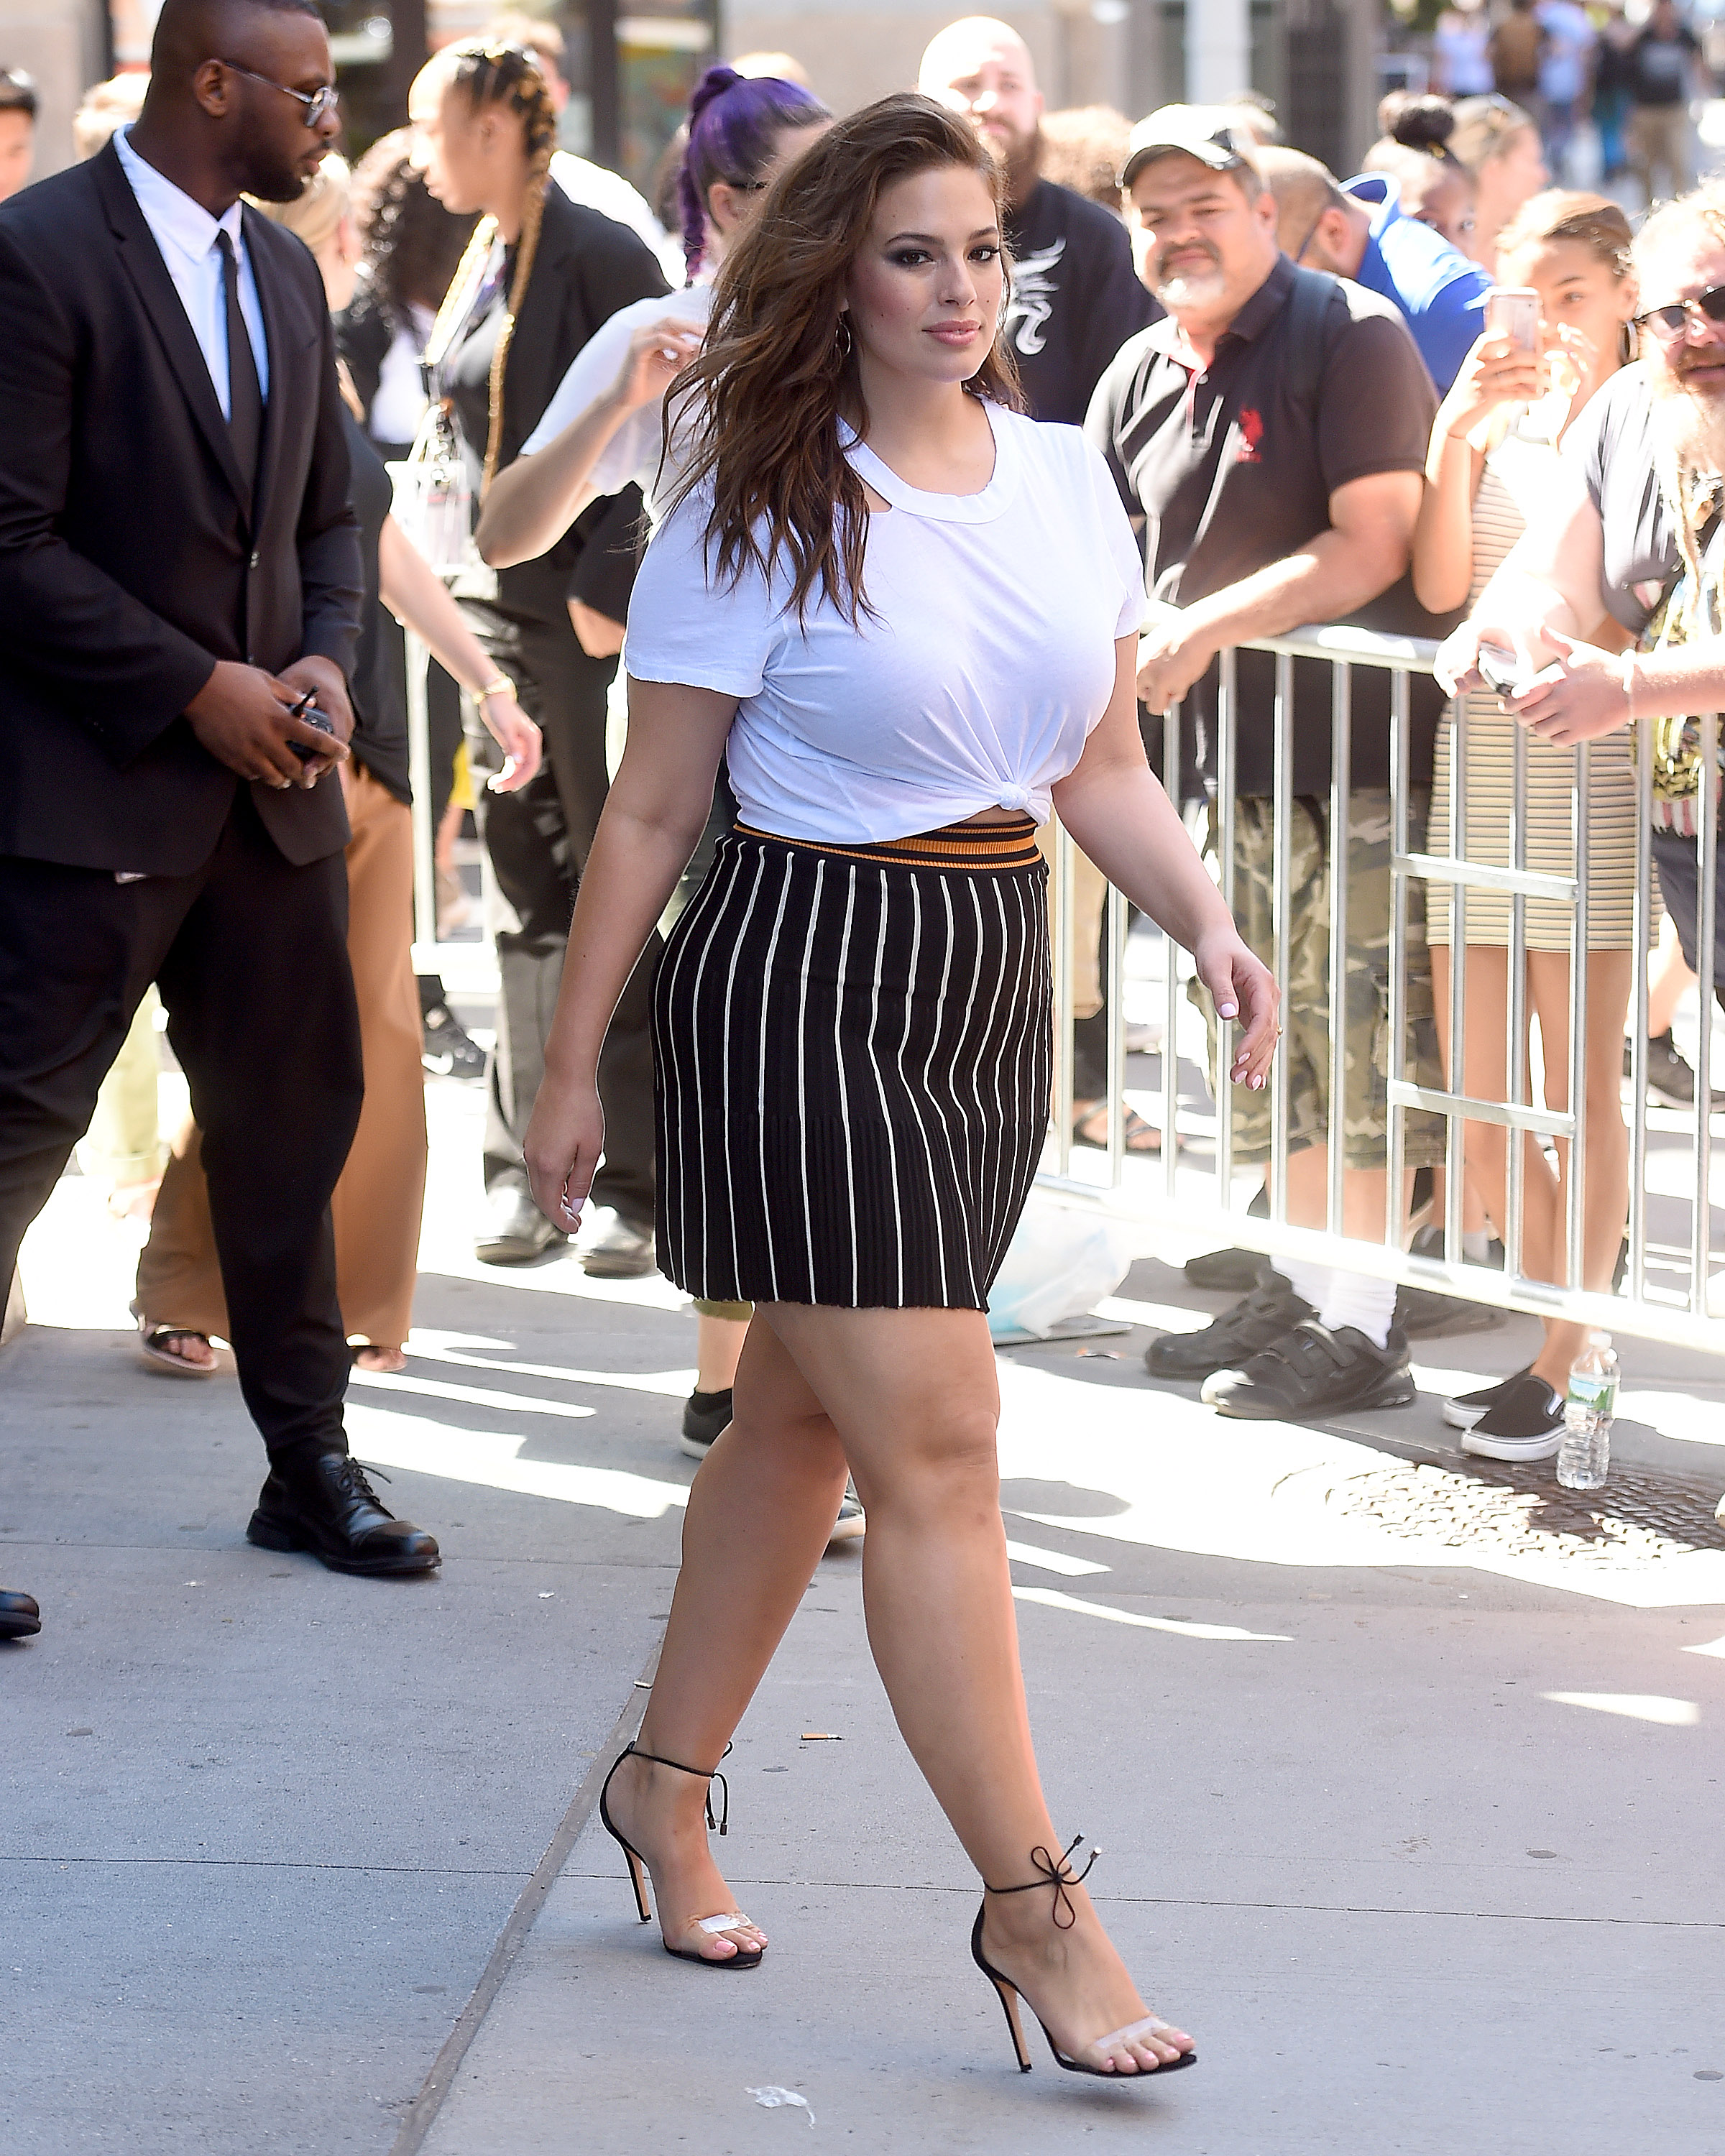 Ashley Graham Mr. Rare 2016 nude (24 photos), Cleavage Celebrity pictures